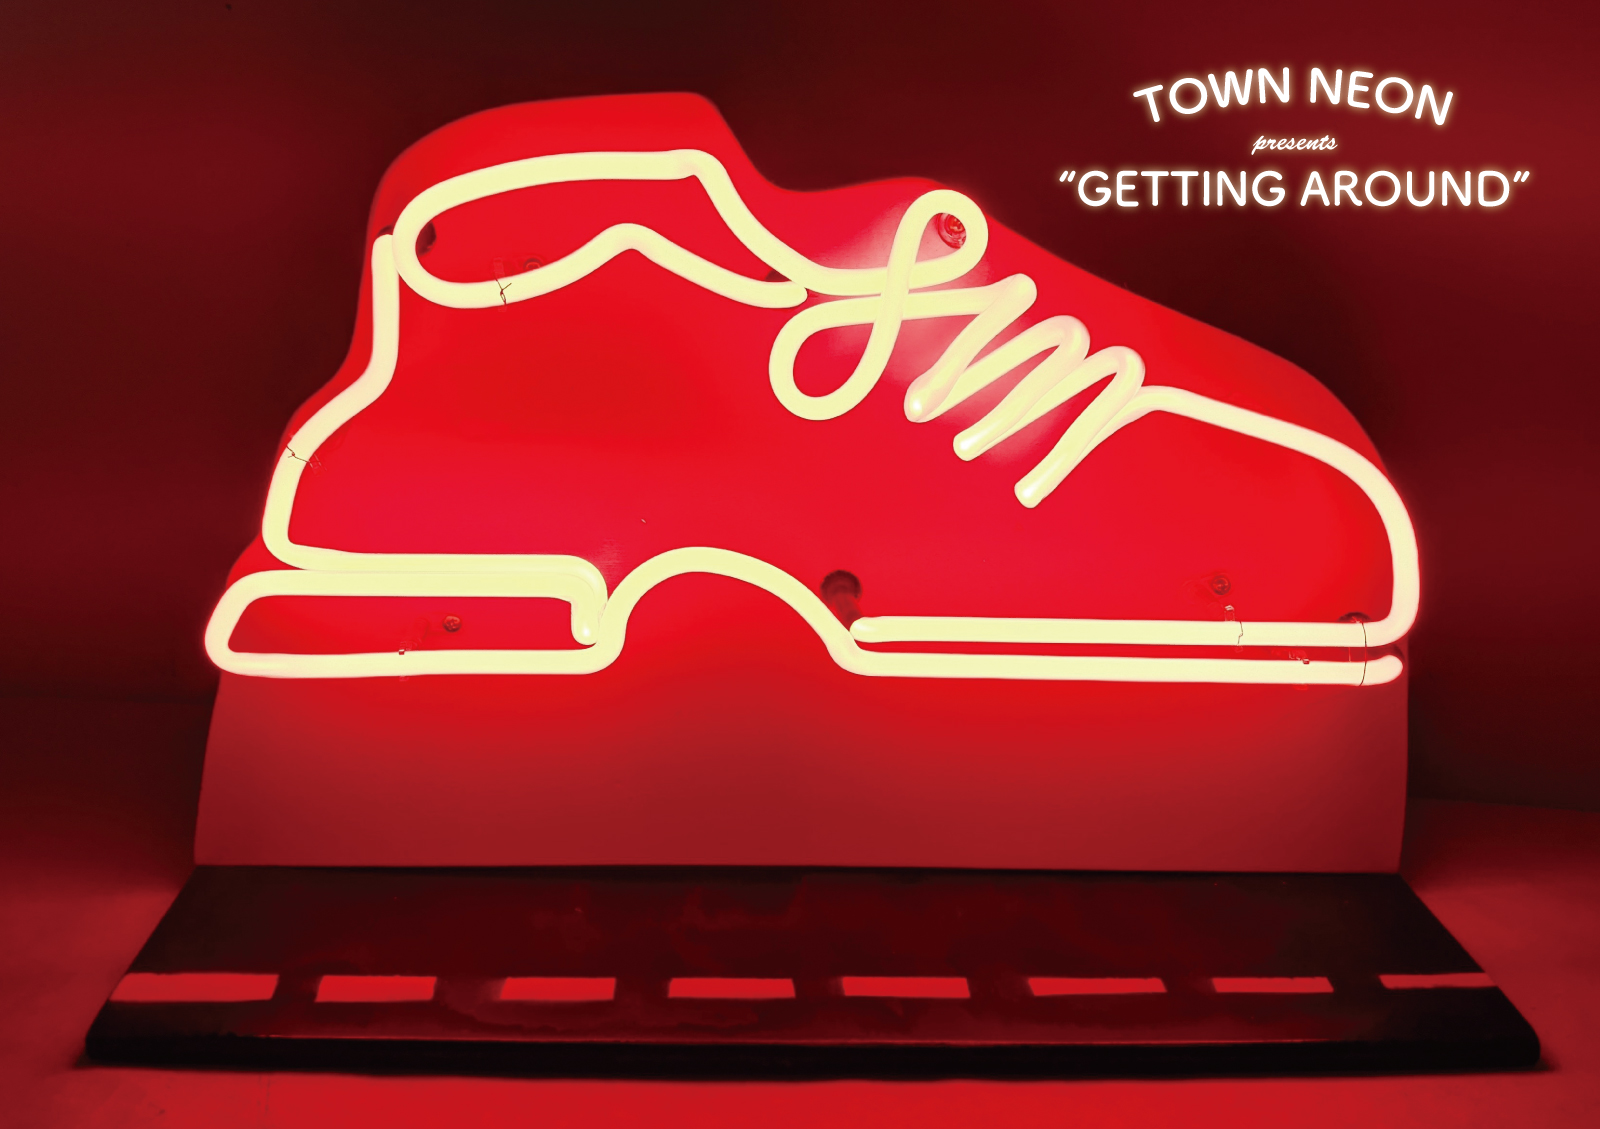 """GETTING AROUND"" by TOWN NEON"